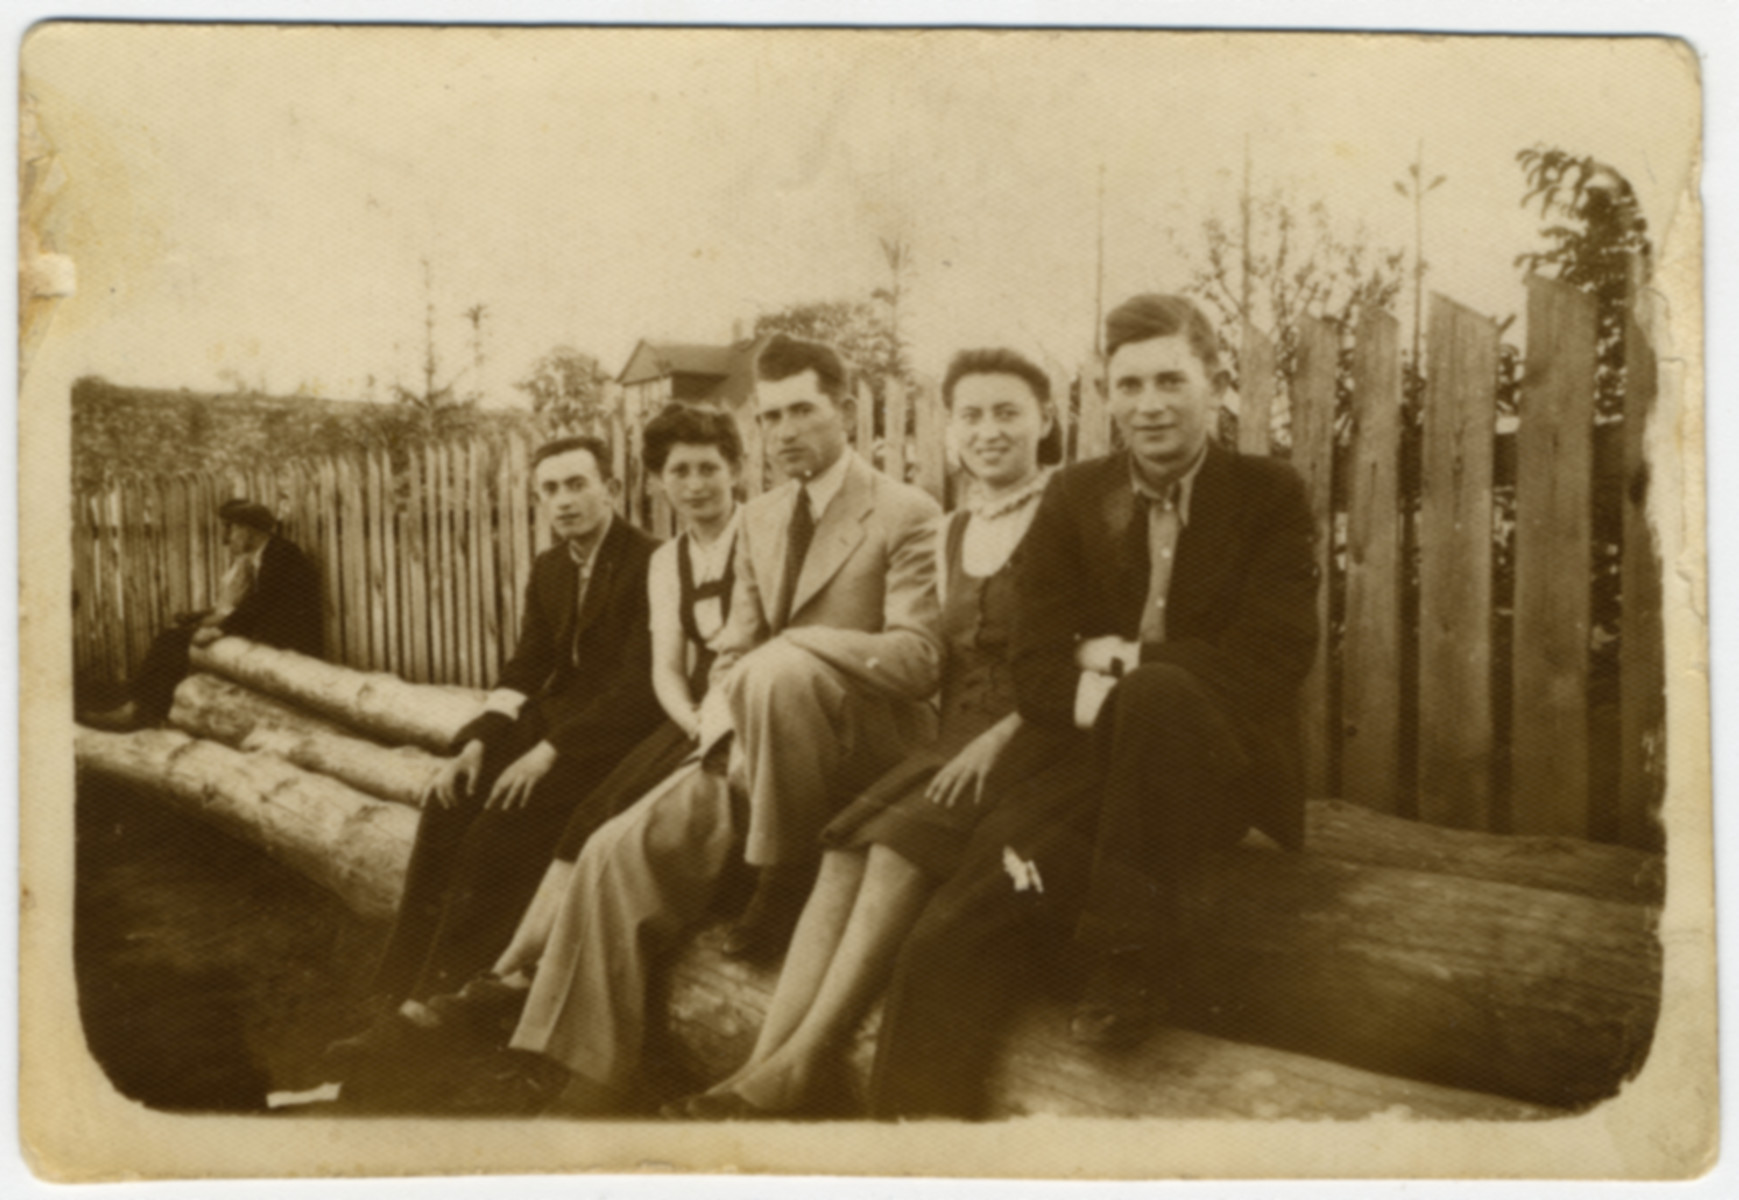 The Luksenburg family poses on some large logs shortly before the start of World War II.  Pictured from left to right are a friend (name unknown), Rivka, Mosche, (unidentified) and Kopel Luksenburg.